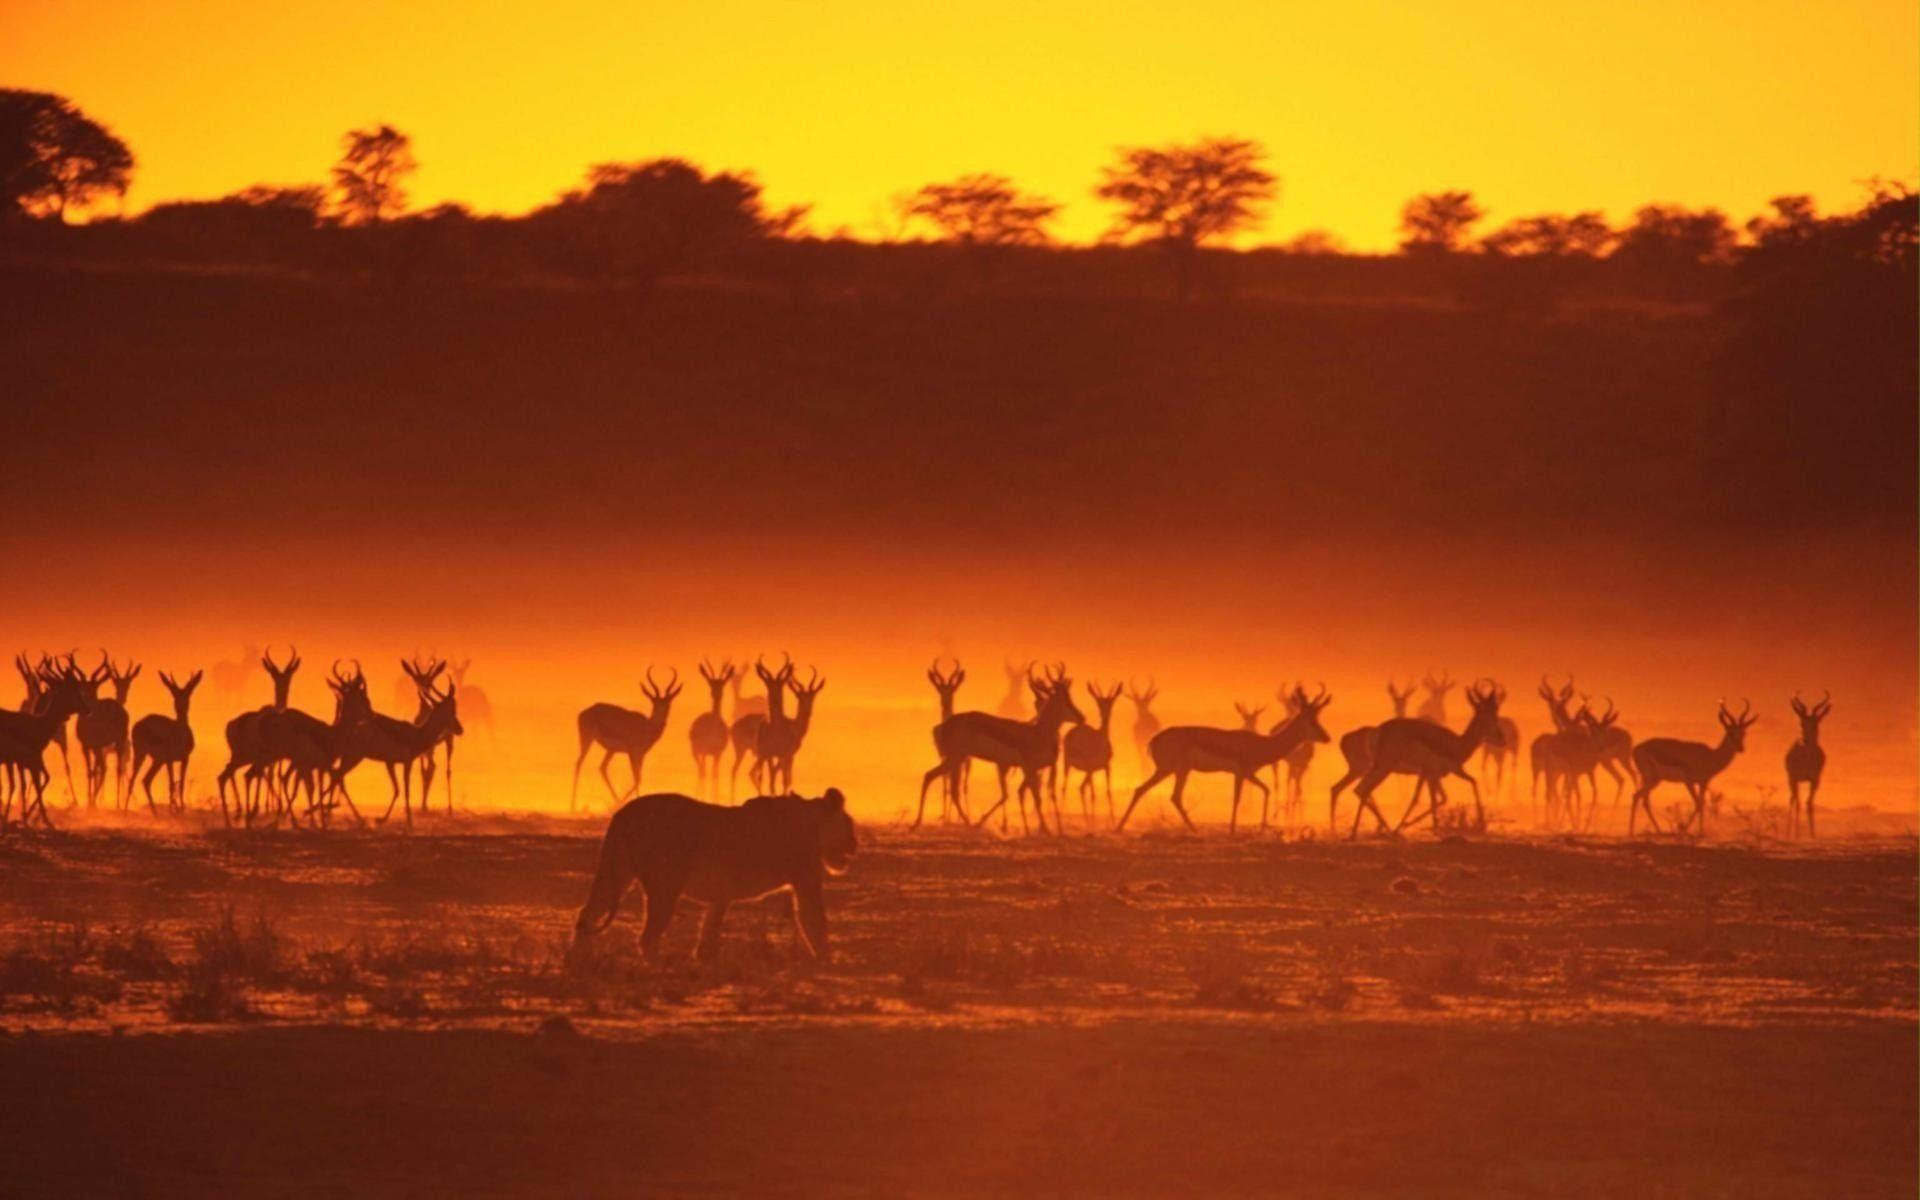 Landscapes animals silhouettes sunlight lions gazelle wallpaper ...